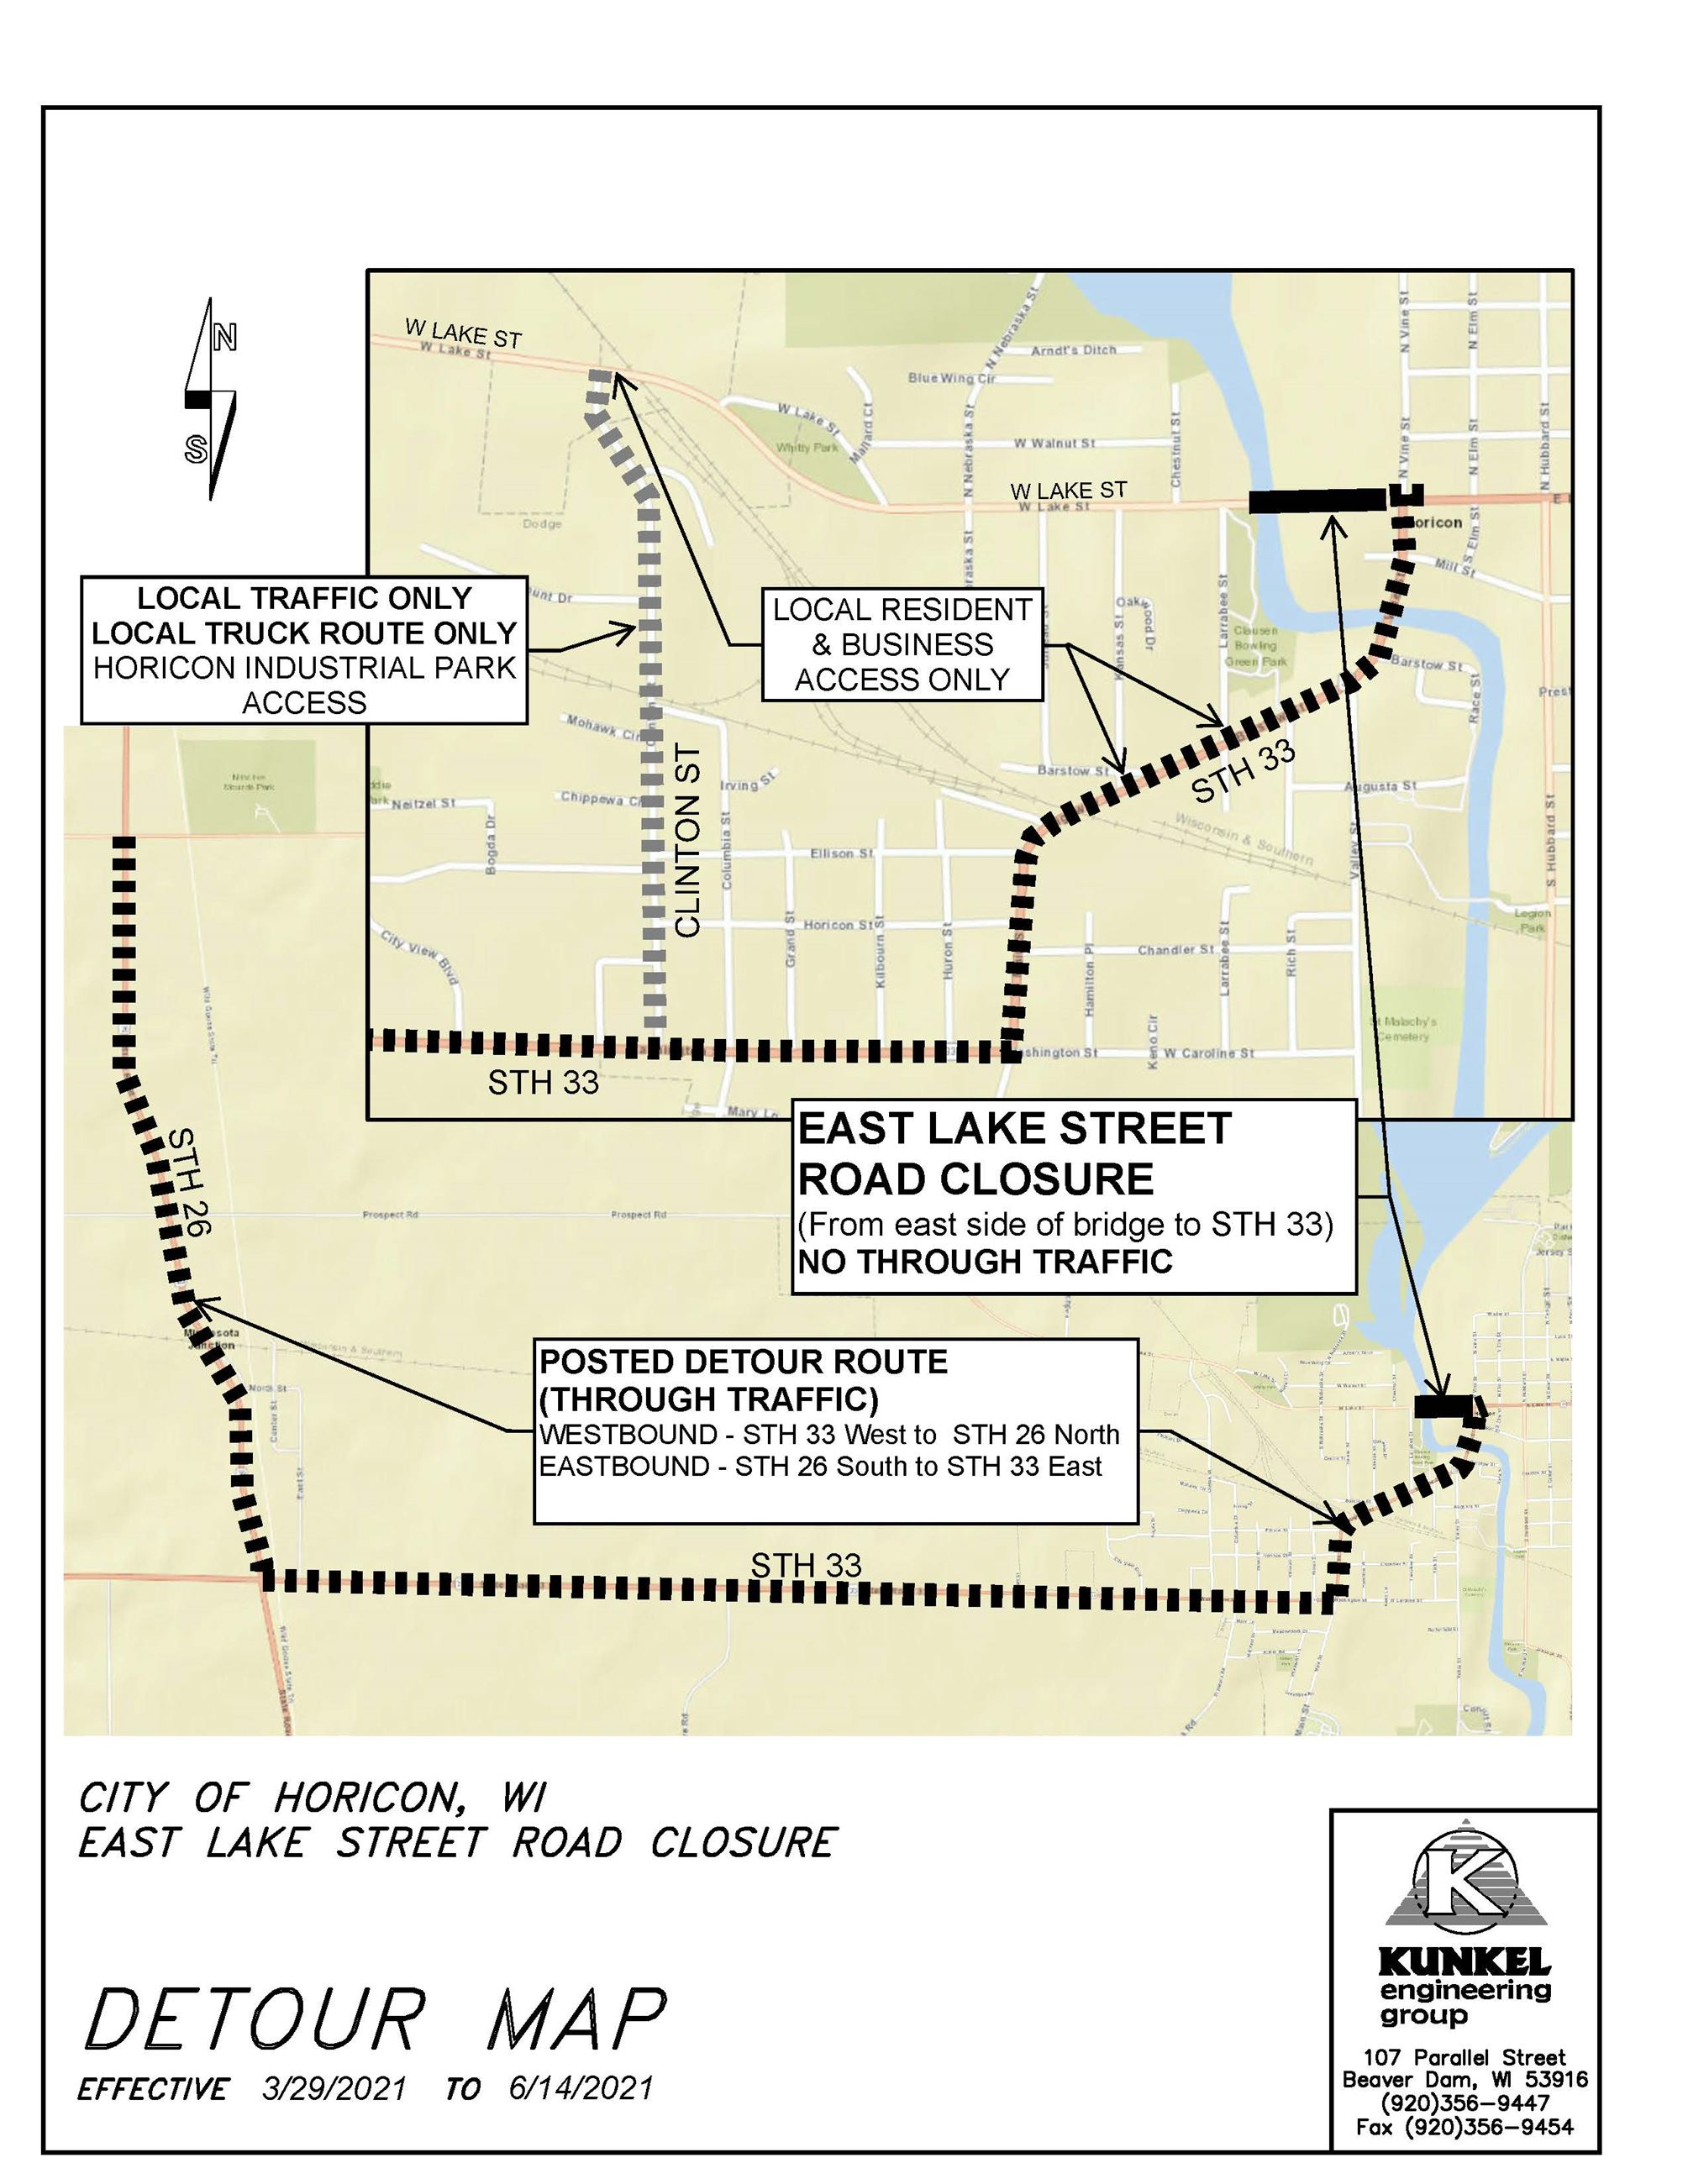 2021-03-29_East Lake Street Closure and Detour Map